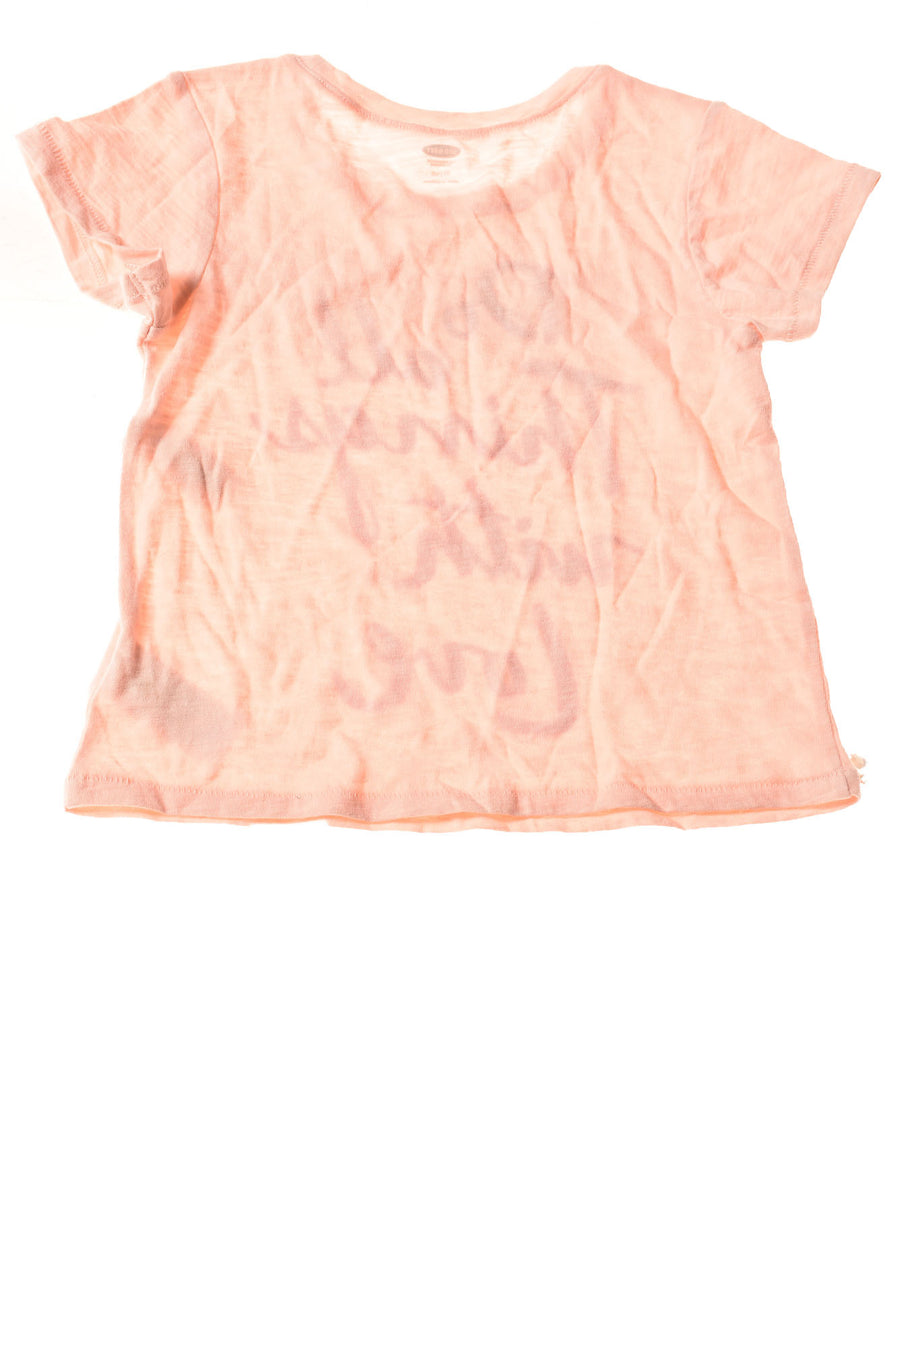 NEW Old Navy Toddler Girl's Top 4T Peach / Print